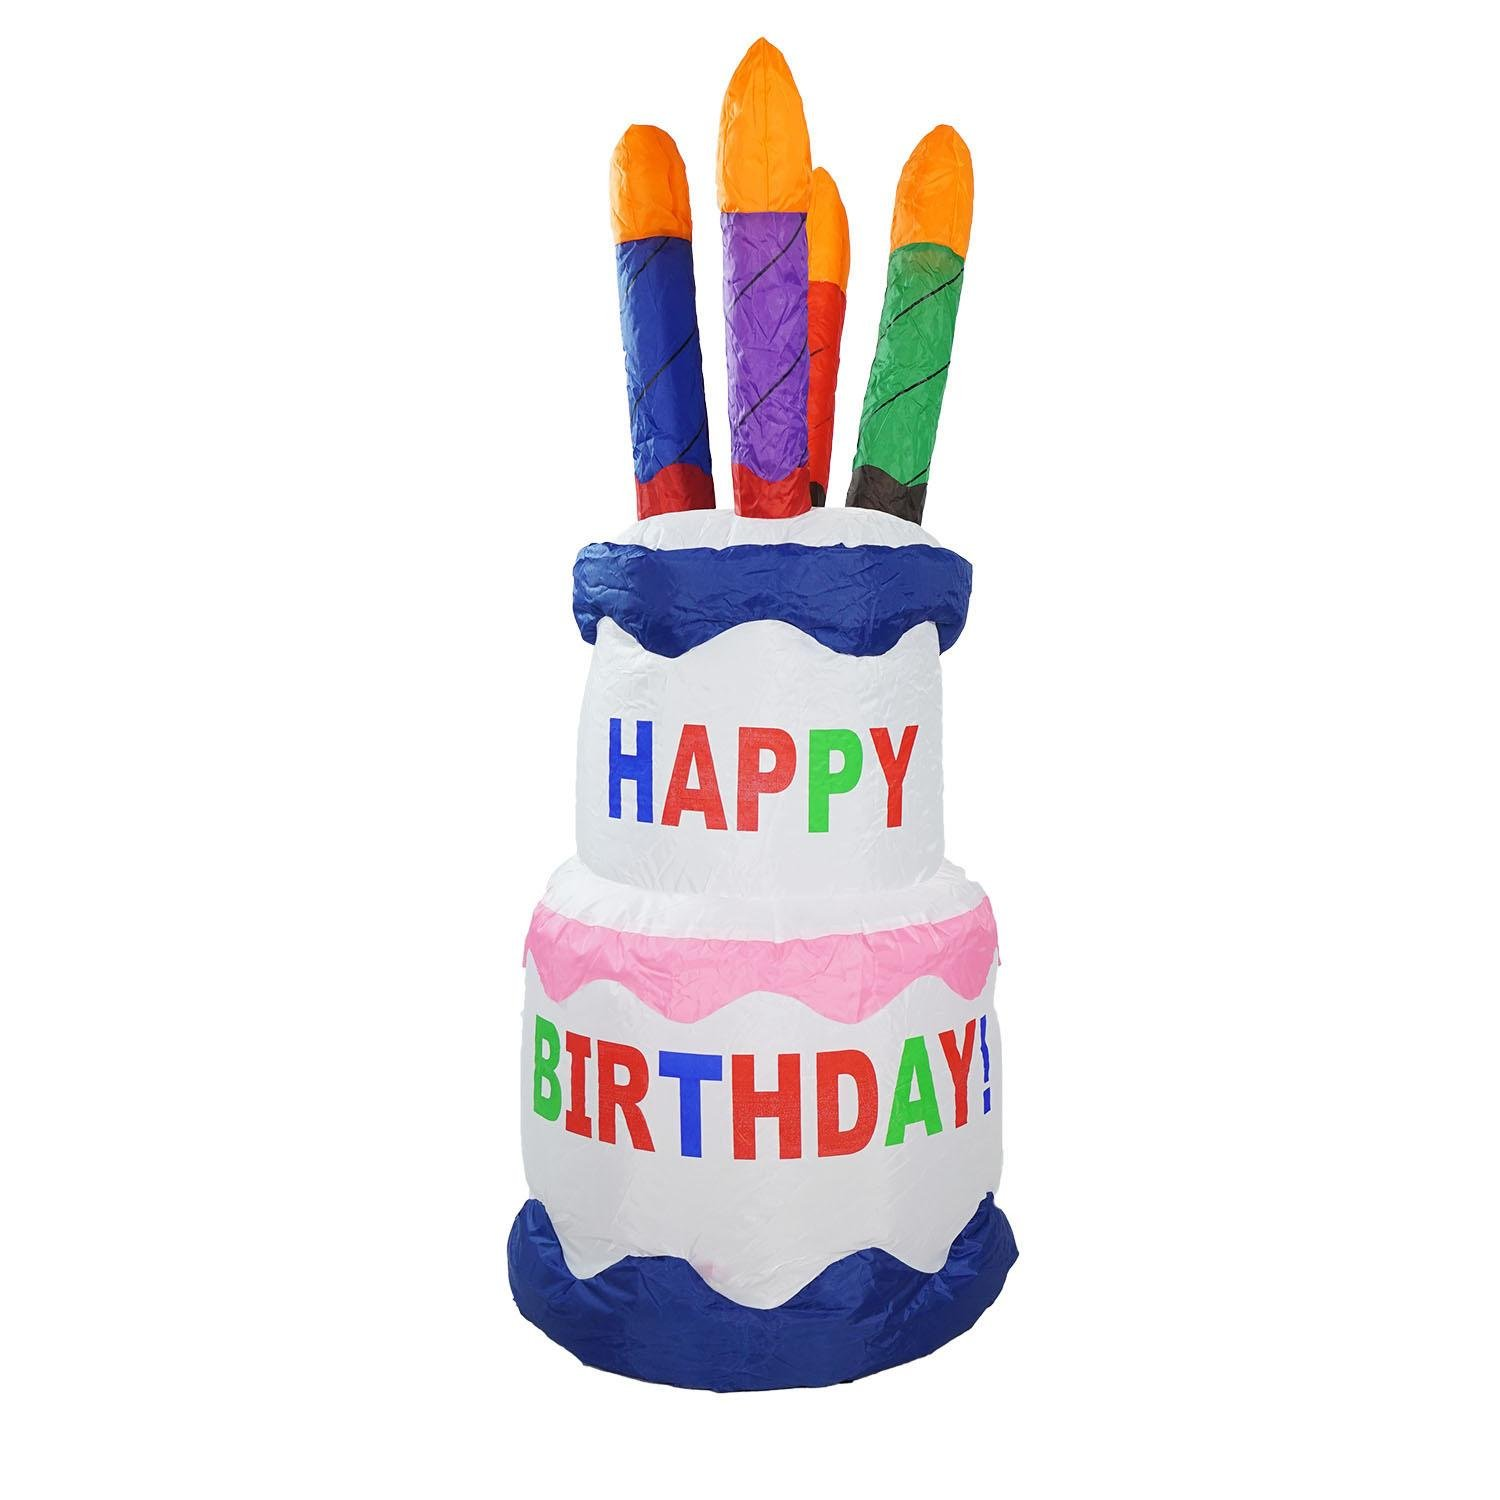 Northlight 4' Inflatable Lighted Happy Birthday Cake Outdoor Decoration